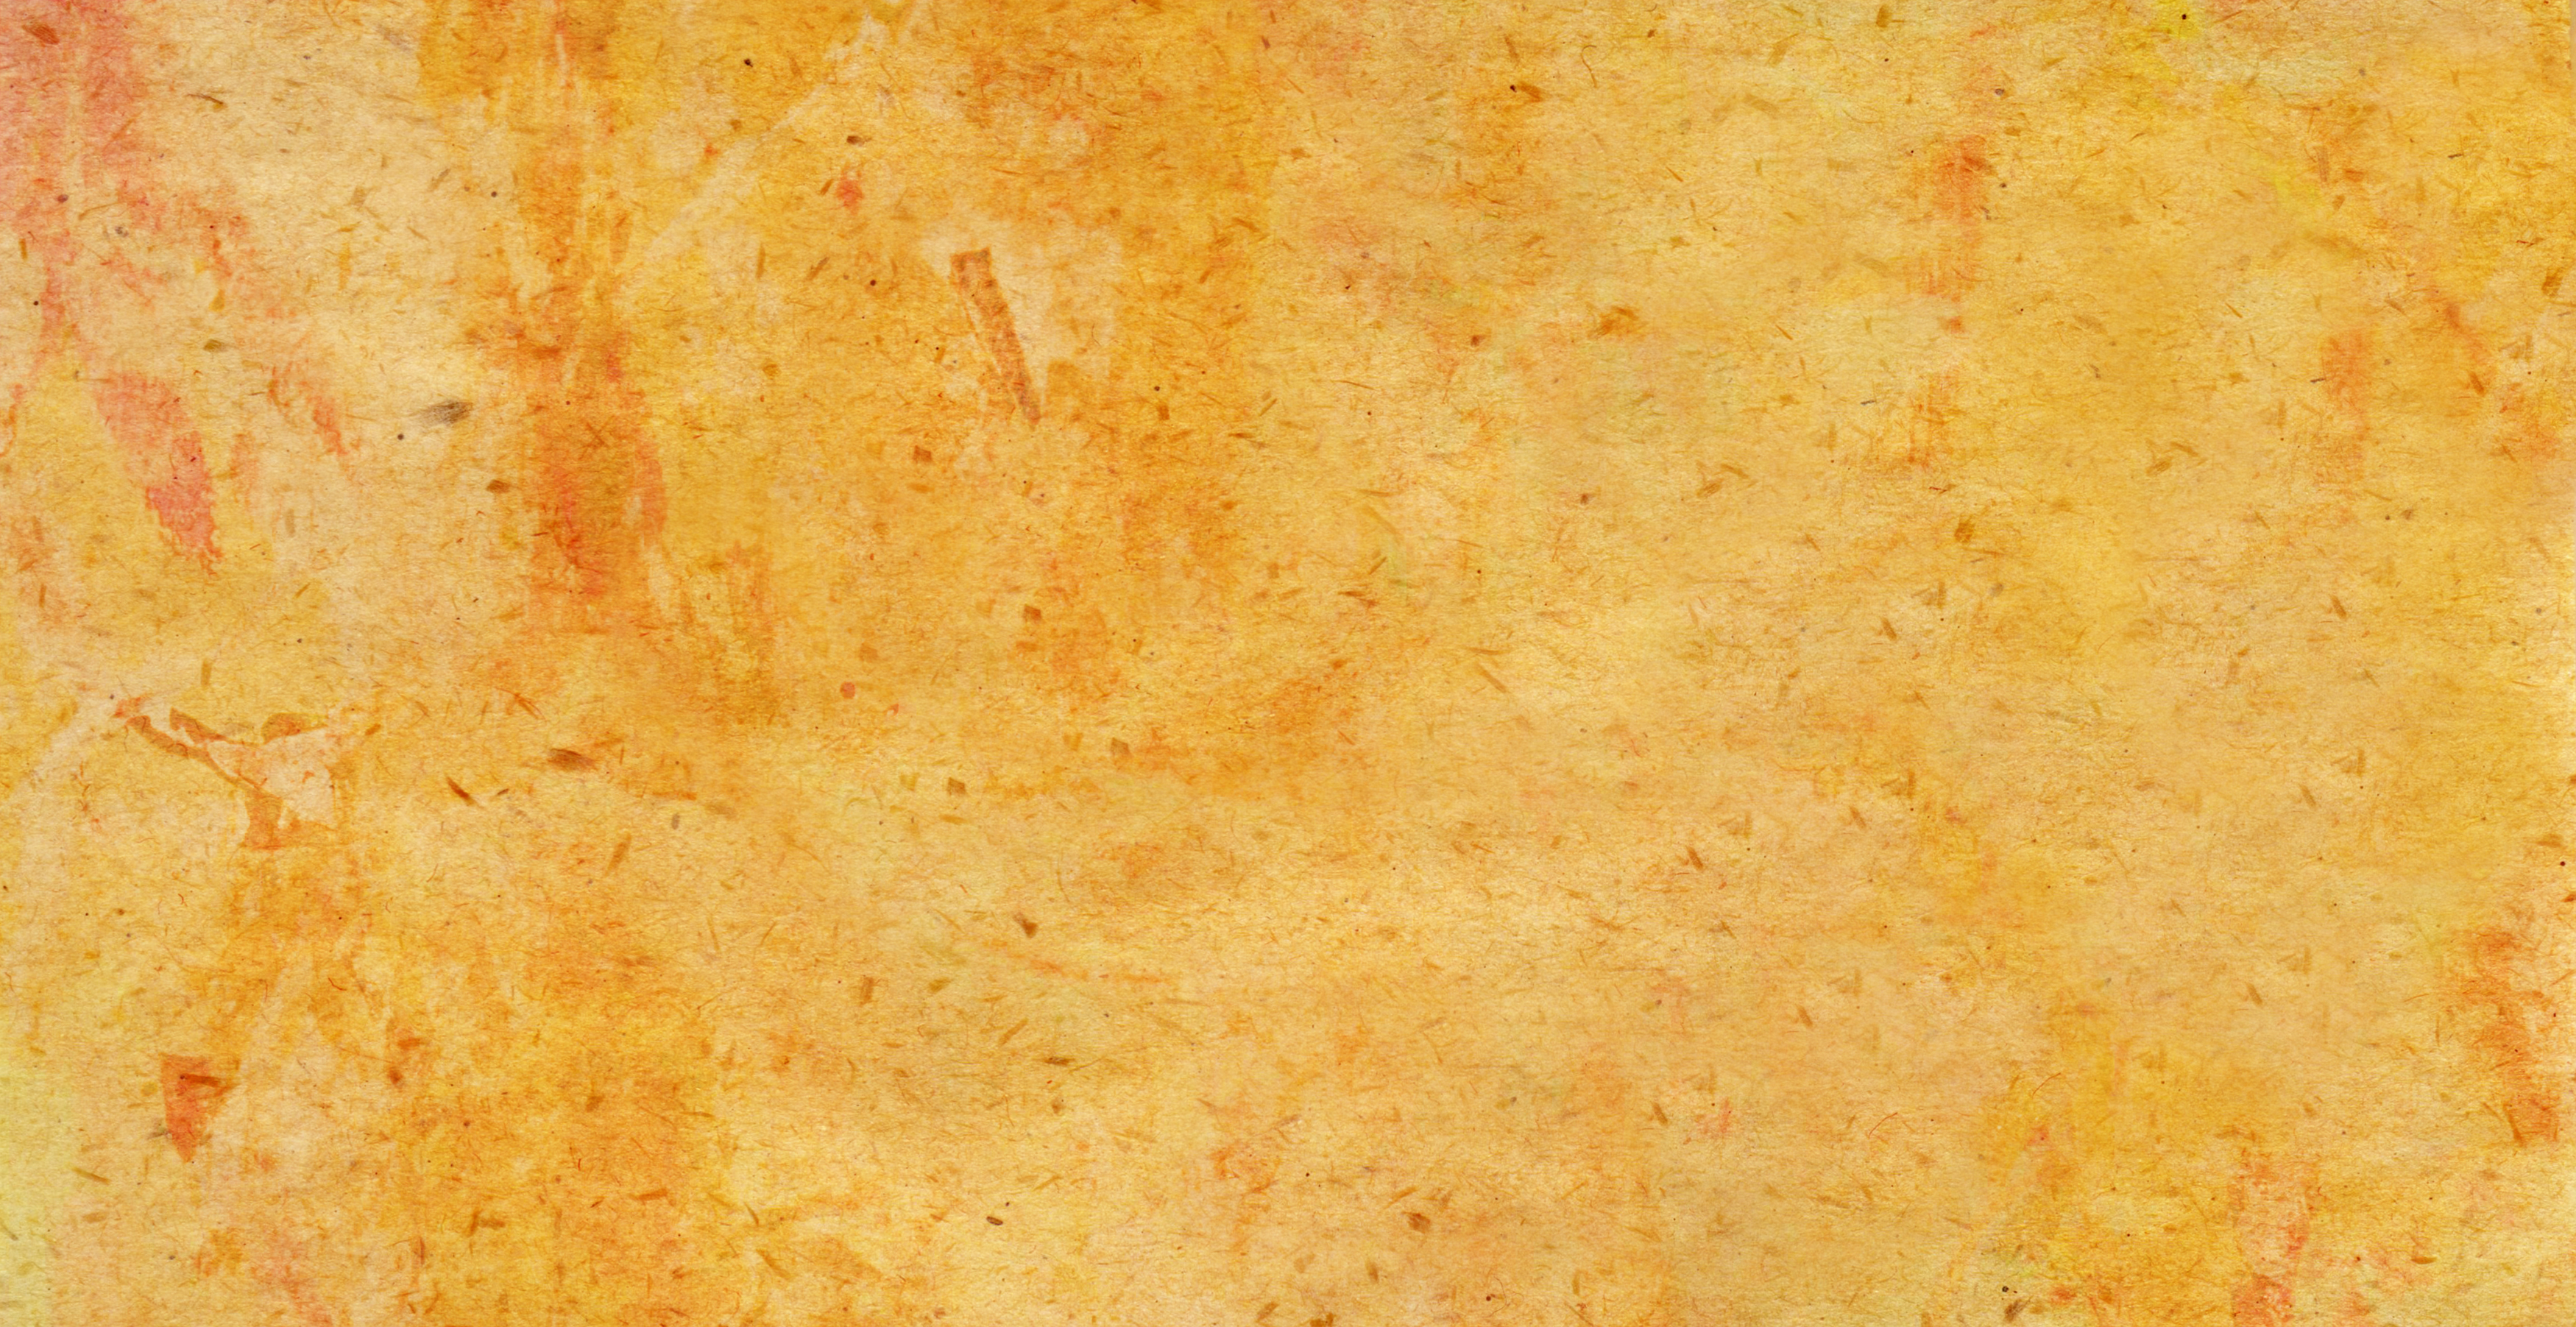 Gallery indiedesigner com free textures backgrounds borders - 5 New Free Vintage Grunge Rolling Paper Textures